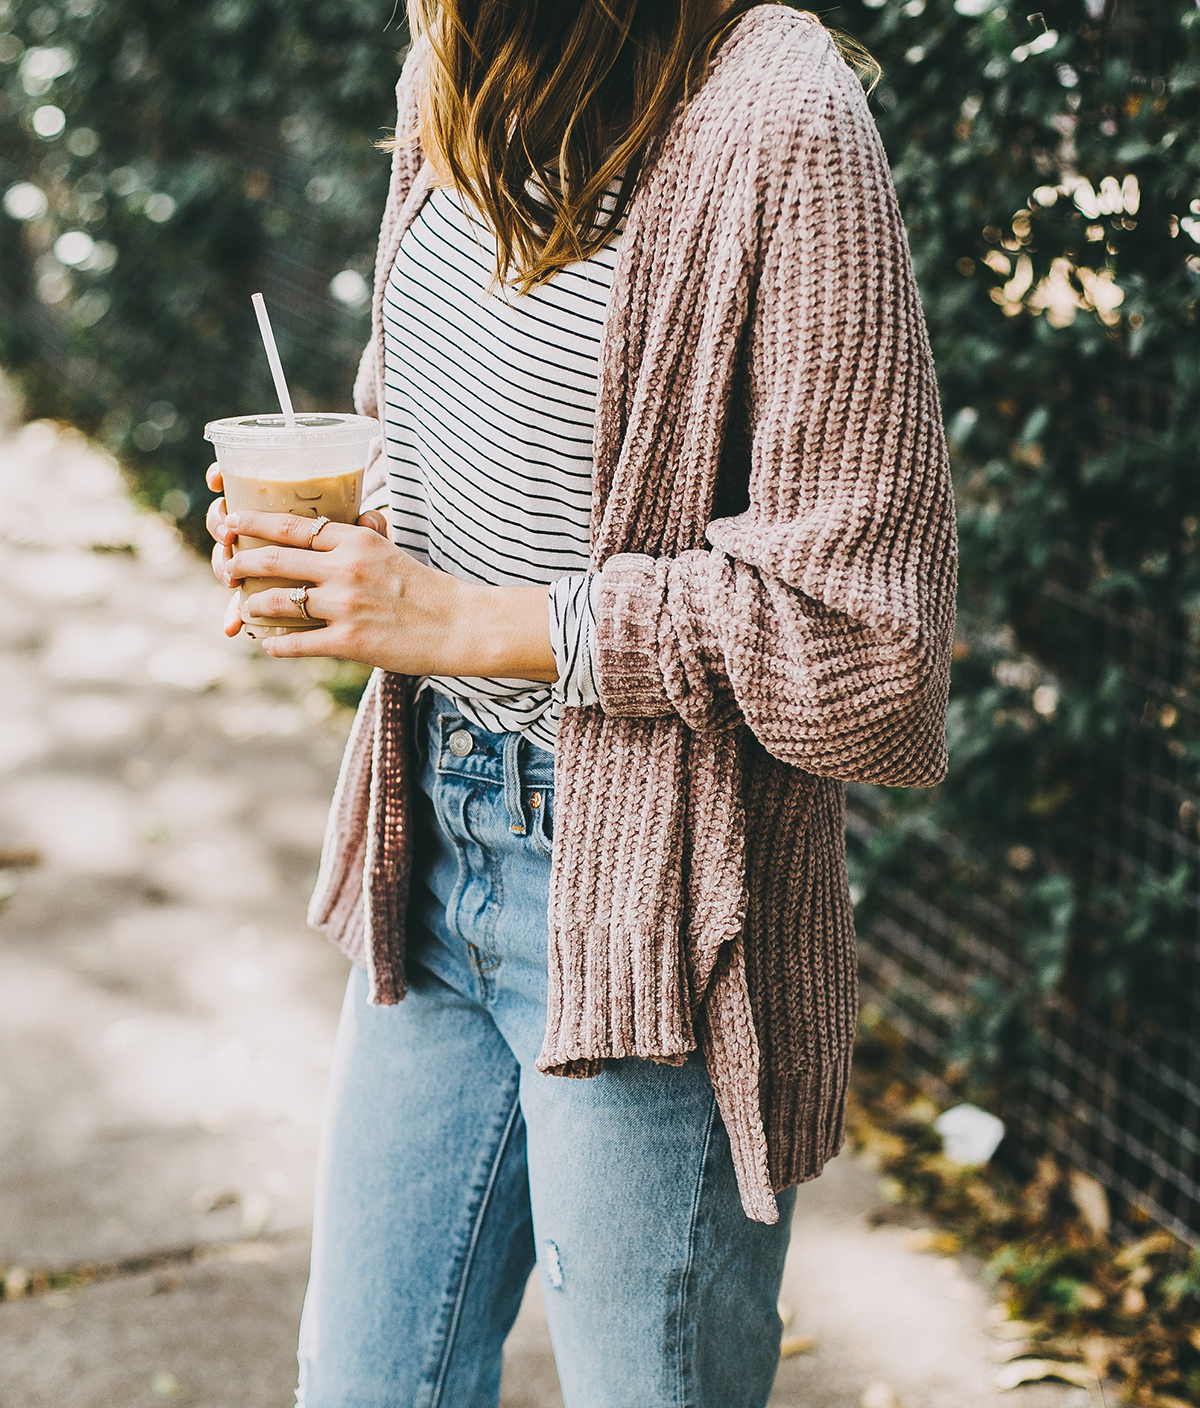 livvyland-blog-olivia-watson-barton-springs-road-chenille-blush-cardigan-stripes-fall-layers-coffee-date-outfit-idea-6